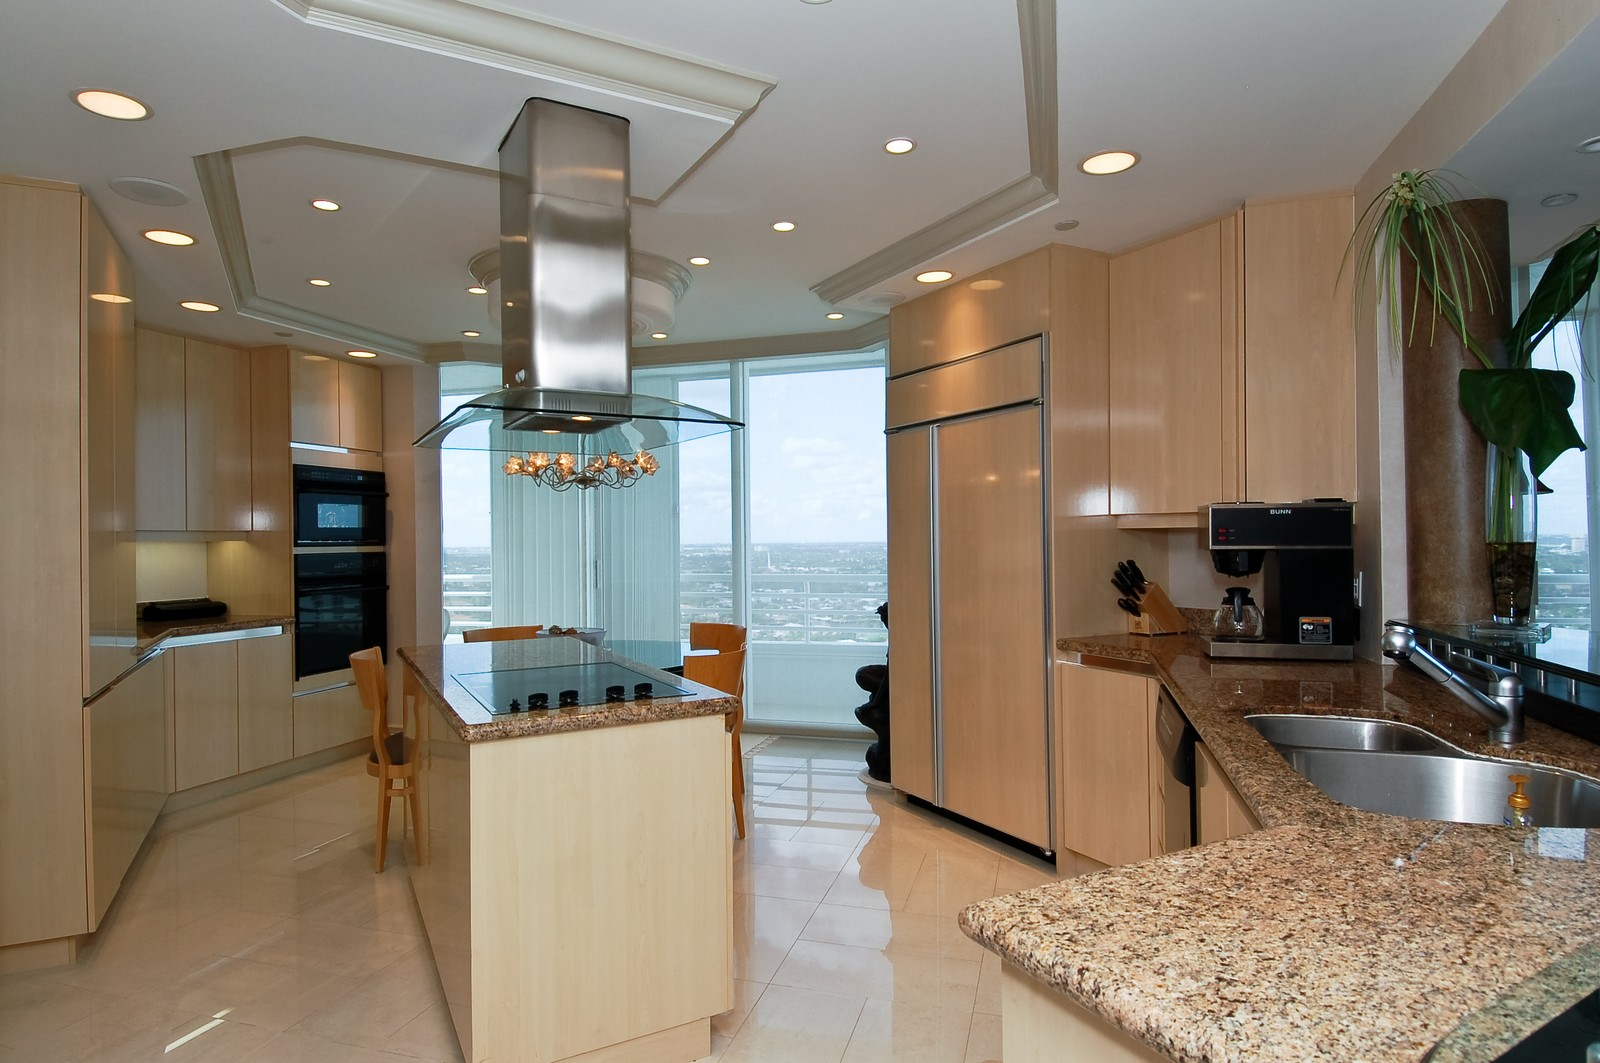 Real Estate Photography - 1700 S Ocean Blvd, 22C, Lauderdale by the Sea, FL, 33062 - Kitchen